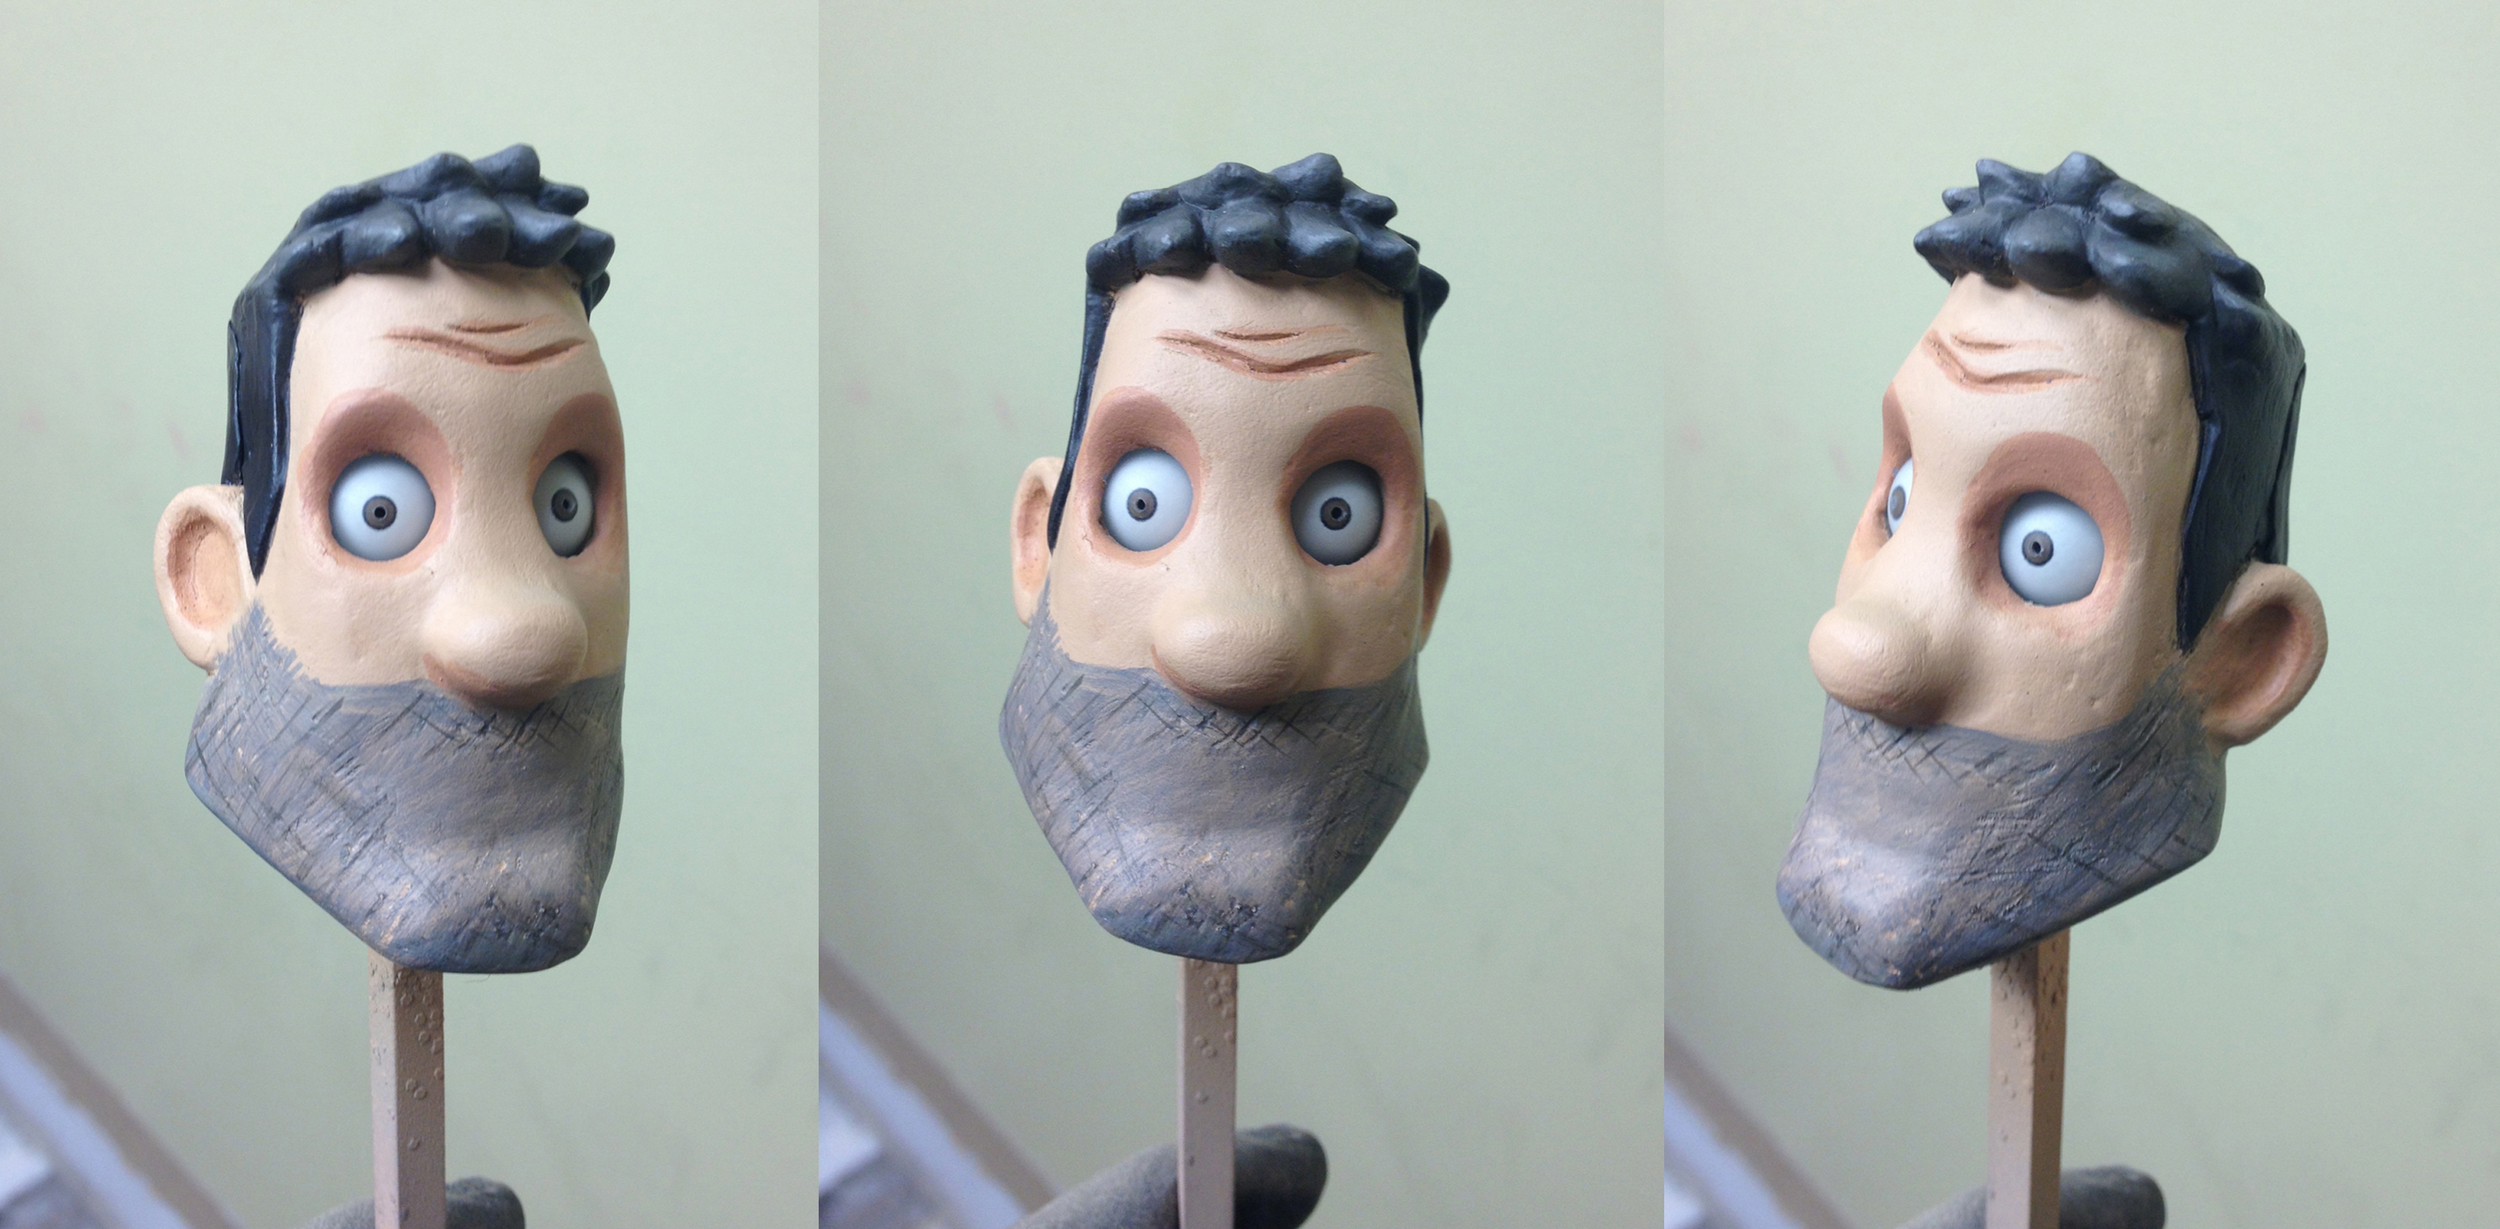 George Clooney puppet head. Height: 3 inches. Cast resin, acrylic paint.  Friendship Allstars of Friendship,   2013